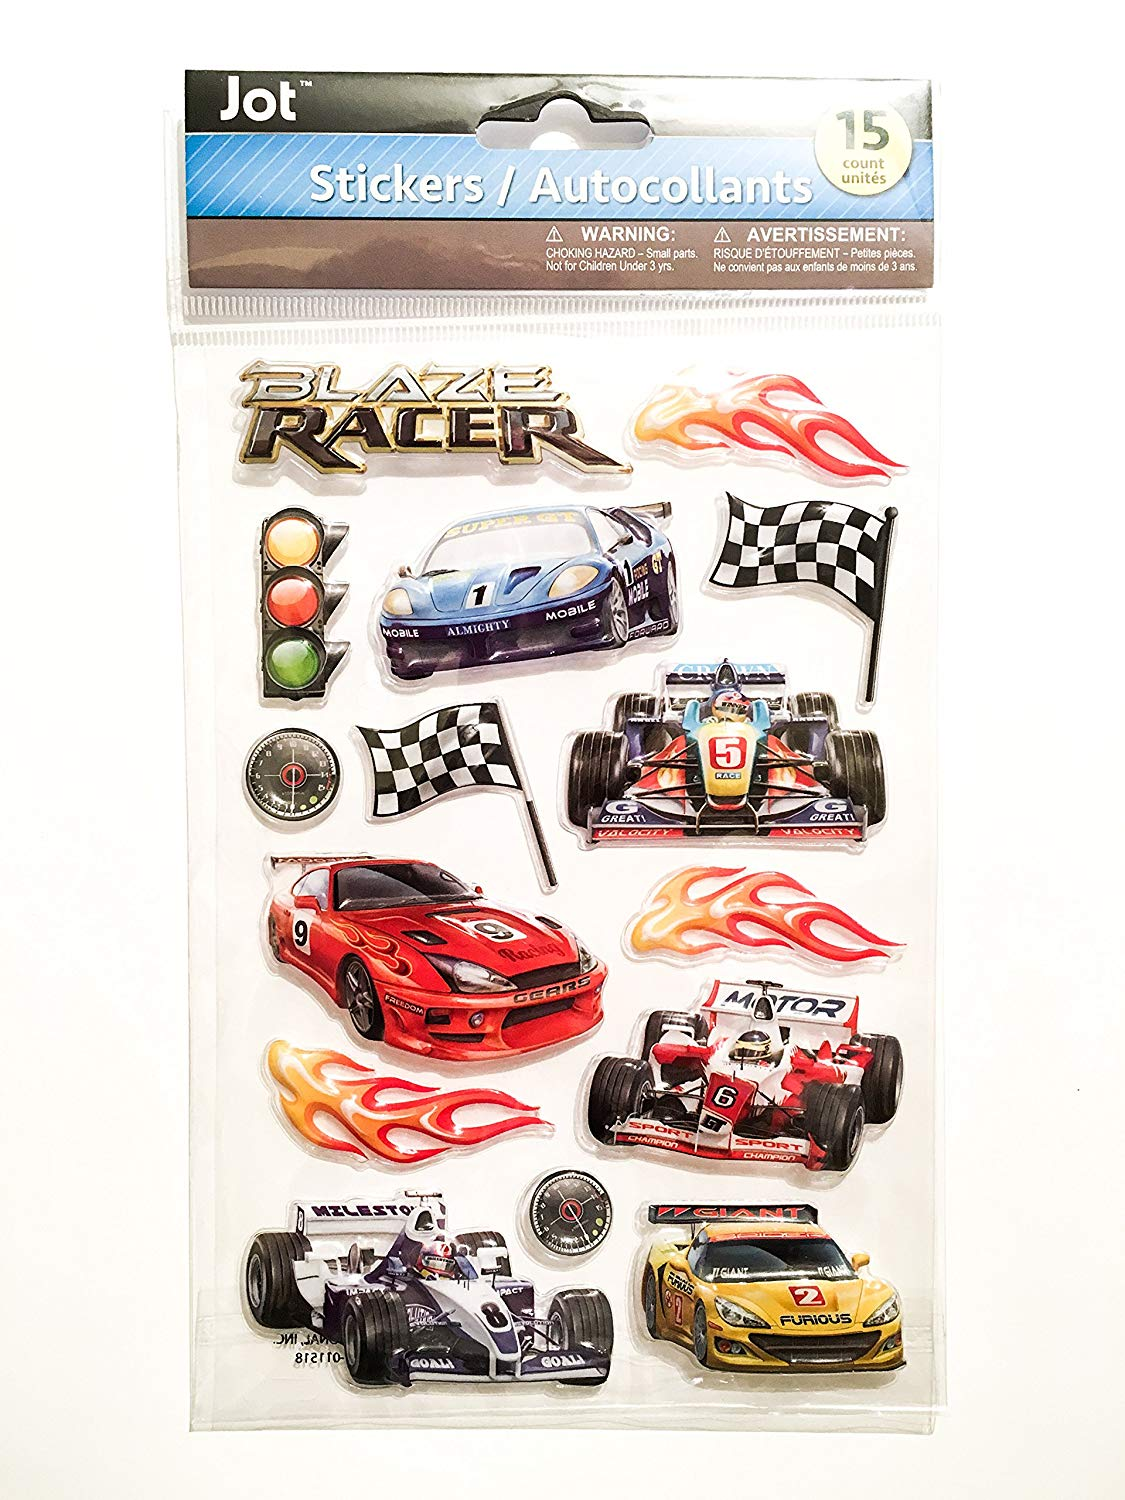 Racing stickers race car stickers racing pop up stickers race track themed stickers